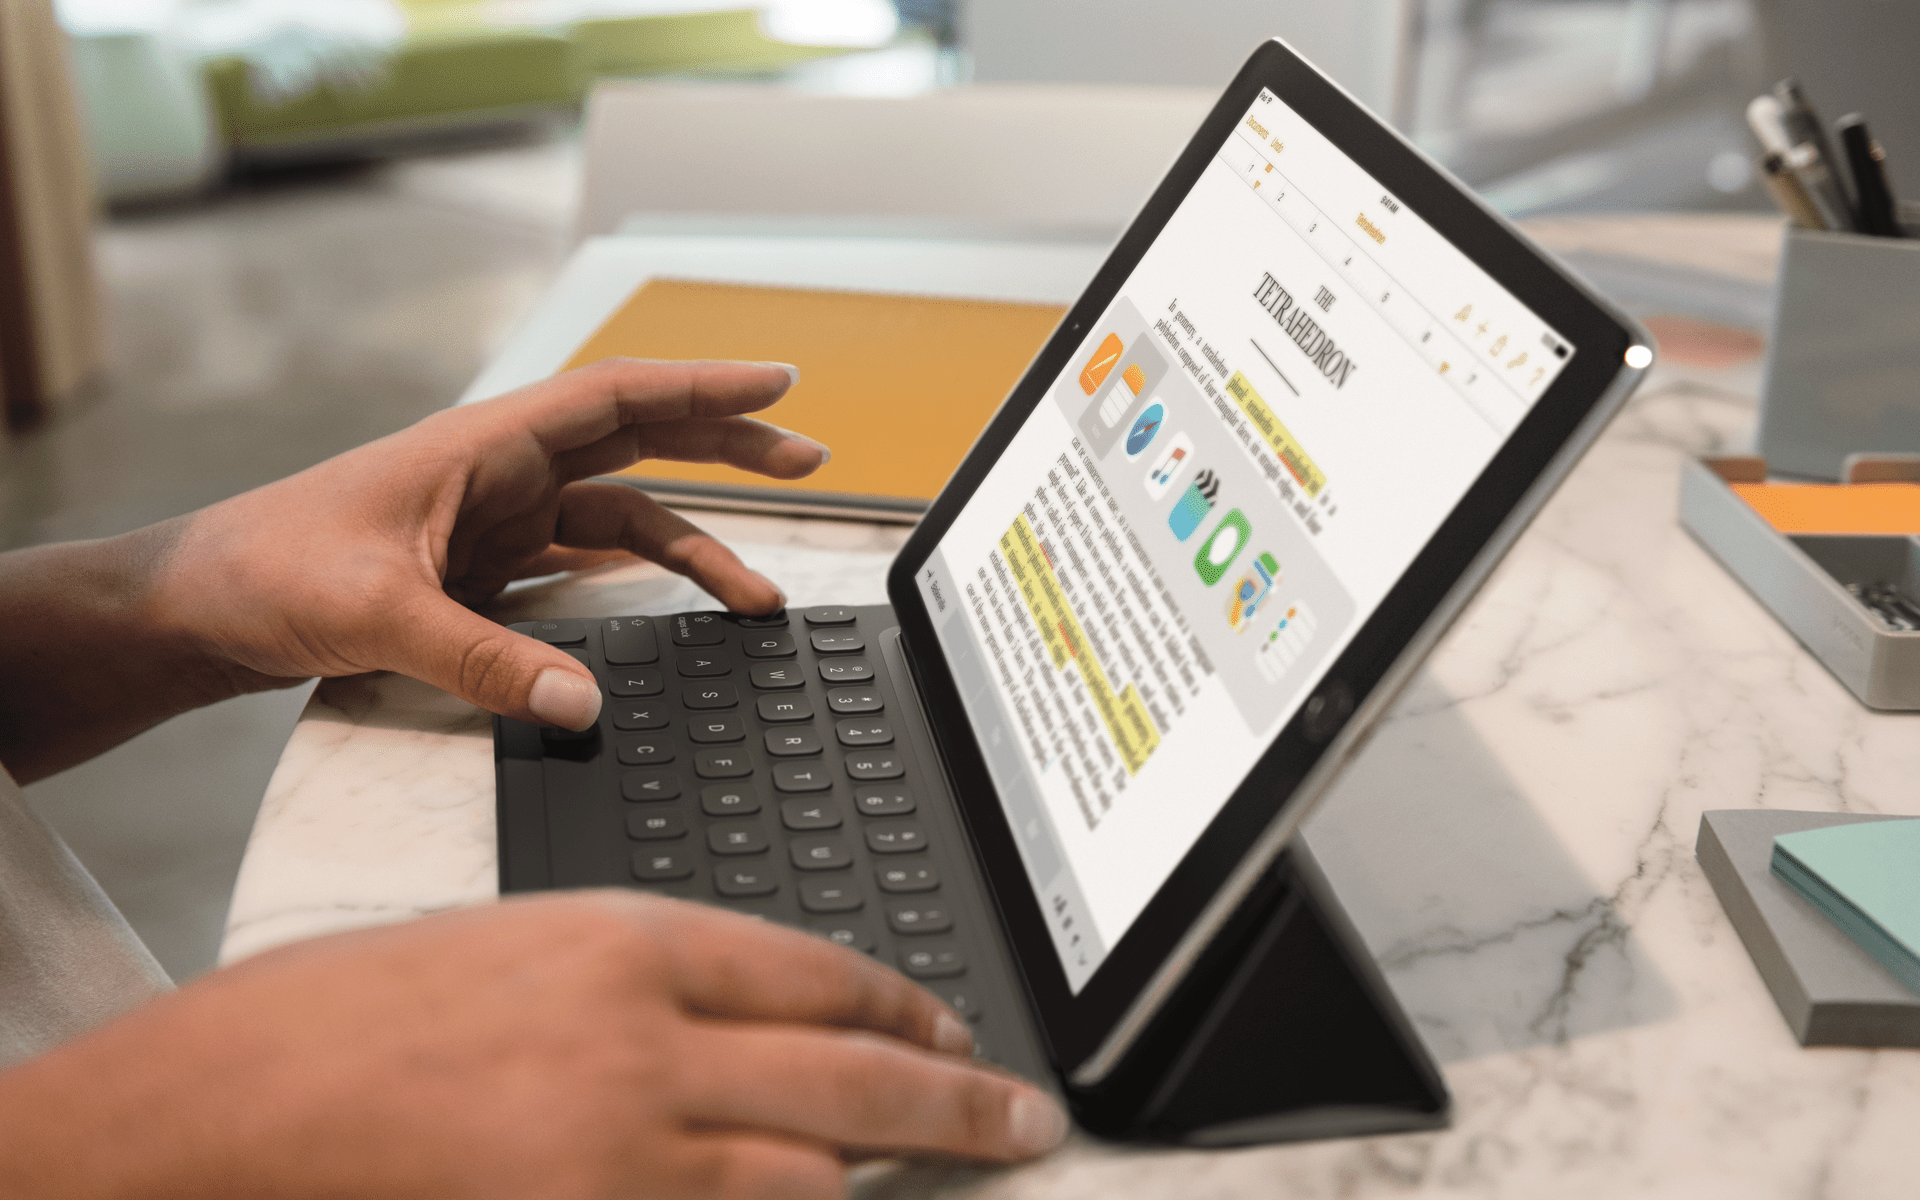 Download The Ipad Manual All Versions